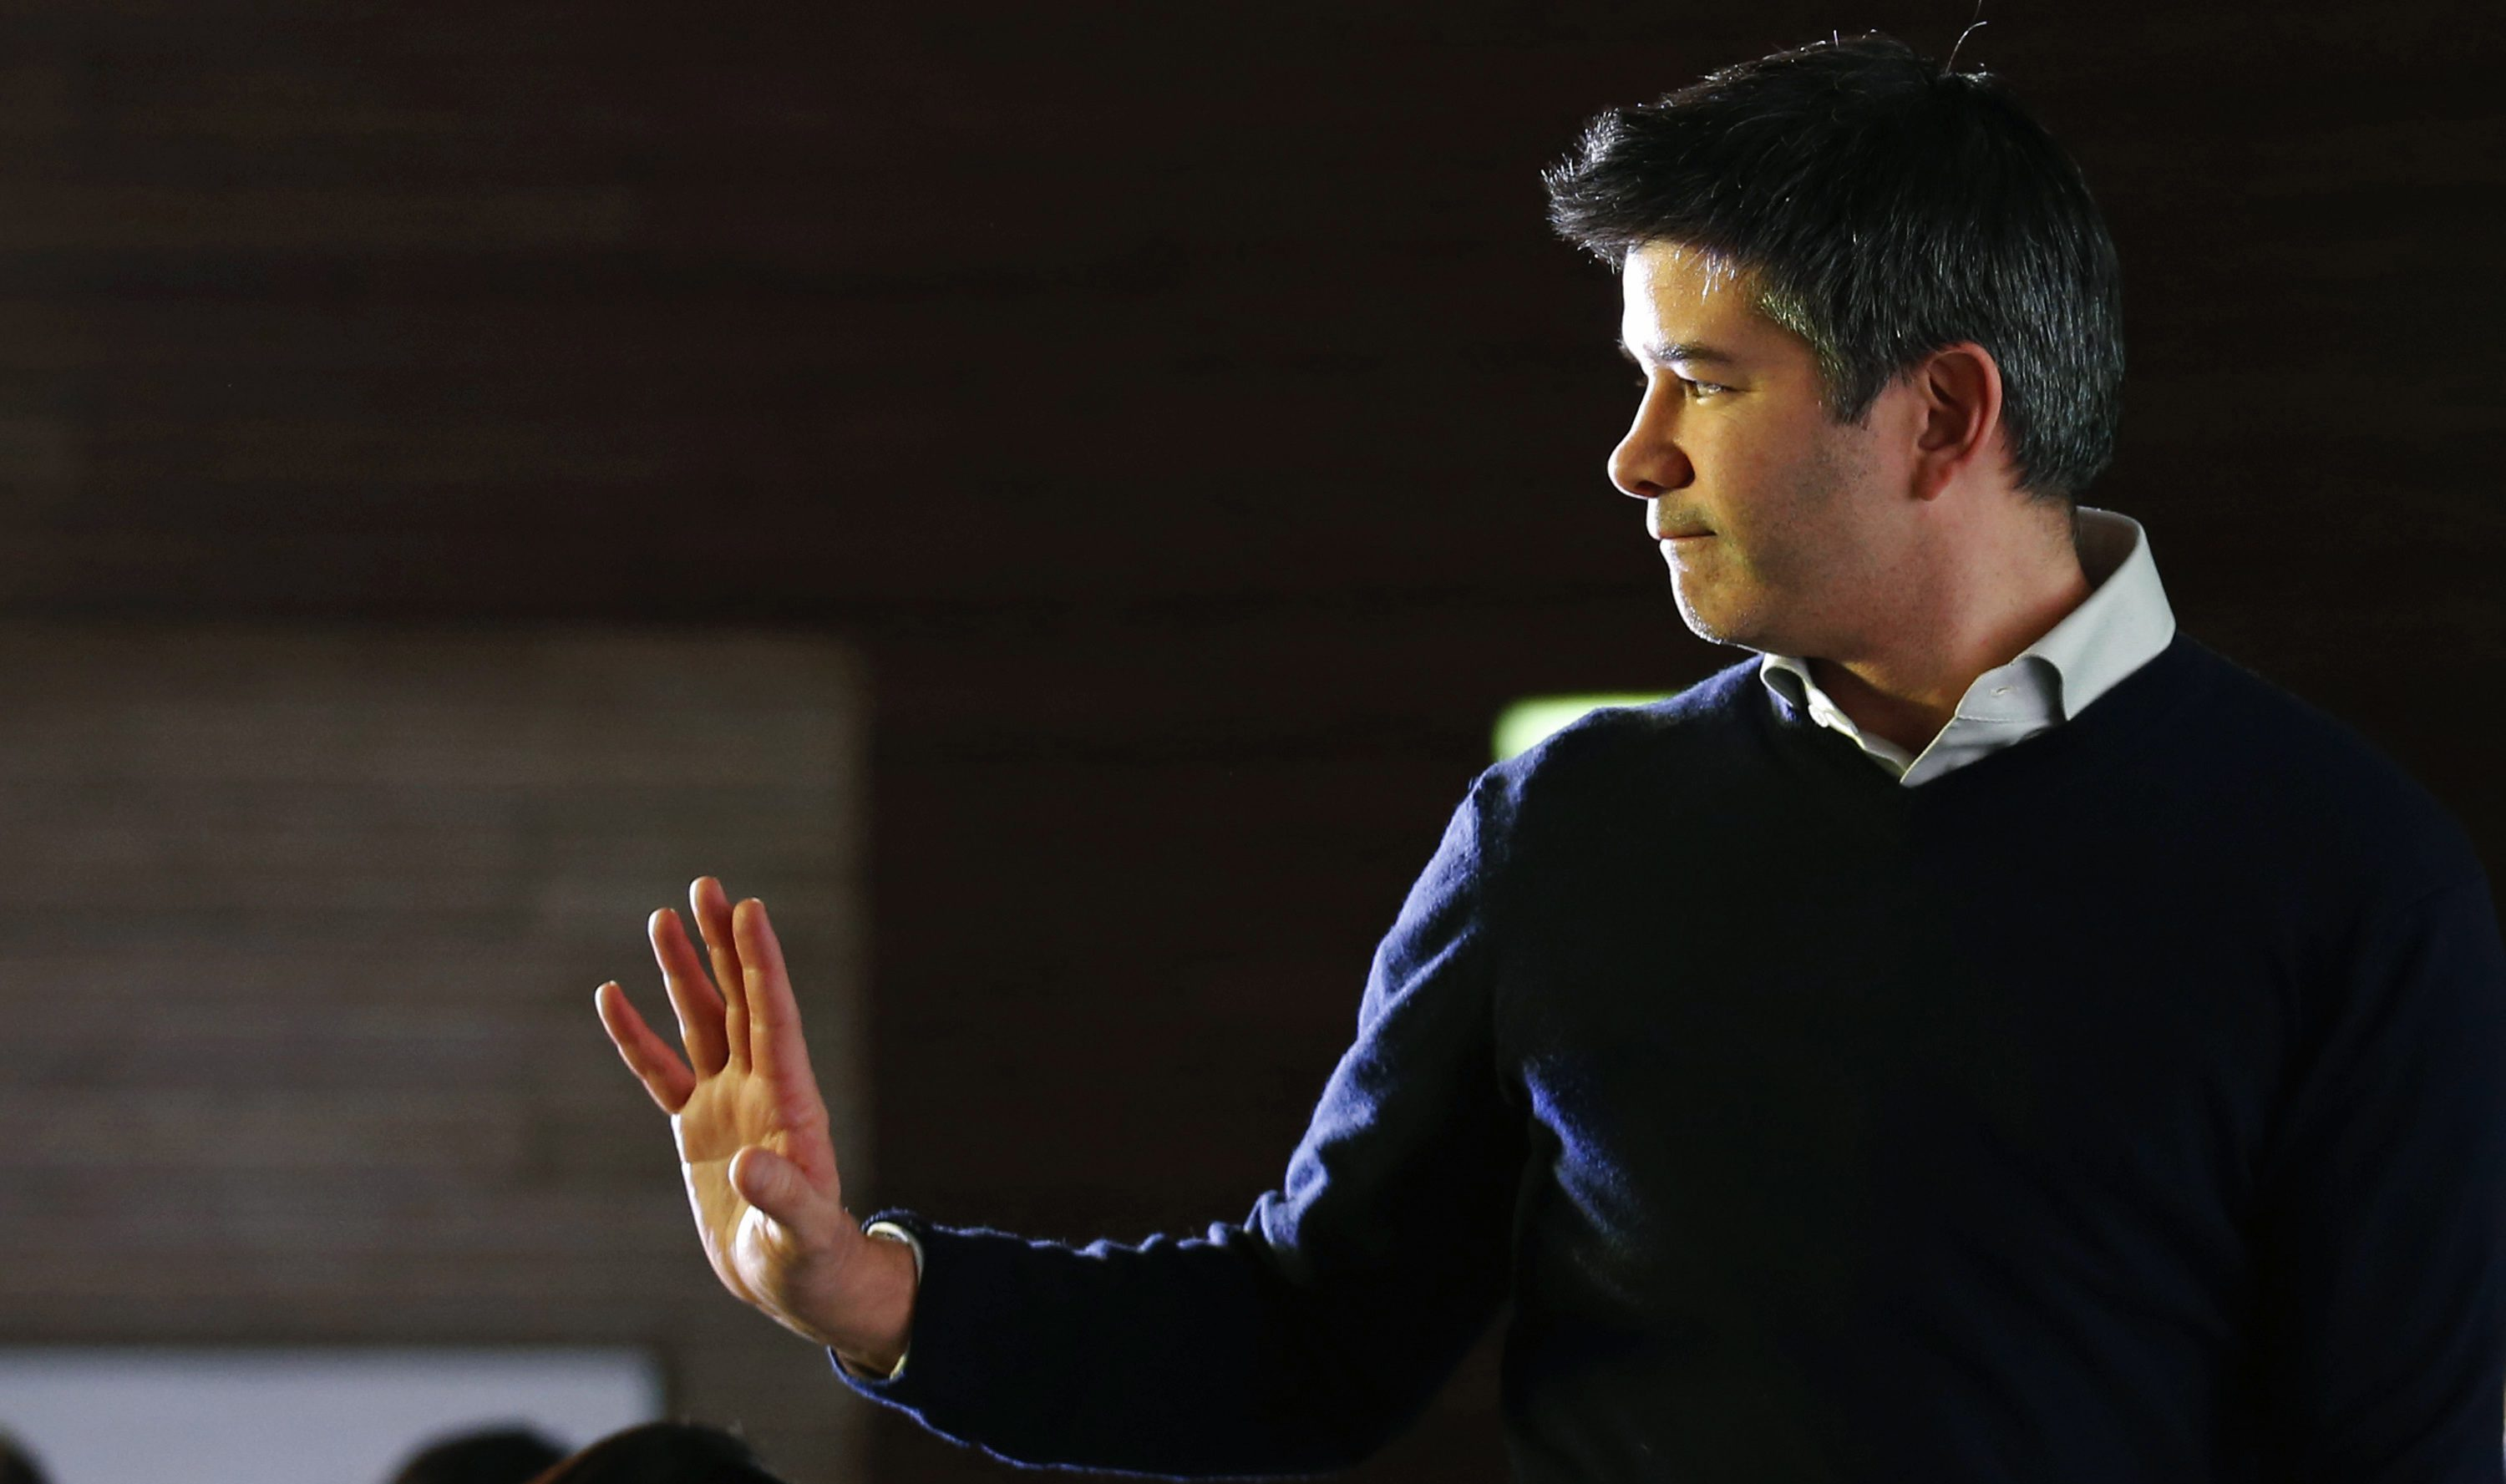 Uber CEO Travis Kalanick acknowledges attendees during the Baidu and Uber strategic cooperation and investment signing ceremony at Baidu's headquarters in Beijing December 17, 2014. Deep-pocketed Chinese rivals and tough regulators stand in the way of U.S. car-hailing service Uber's plans to conquer one of the world's biggest transportation markets, even after it signed a tieup with domestic internet giant Baidu Inc.  REUTERS/Kim Kyung-Hoon (CHINA - Tags: BUSINESS SCIENCE TECHNOLOGY TRANSPORT) - RTR4IC7F